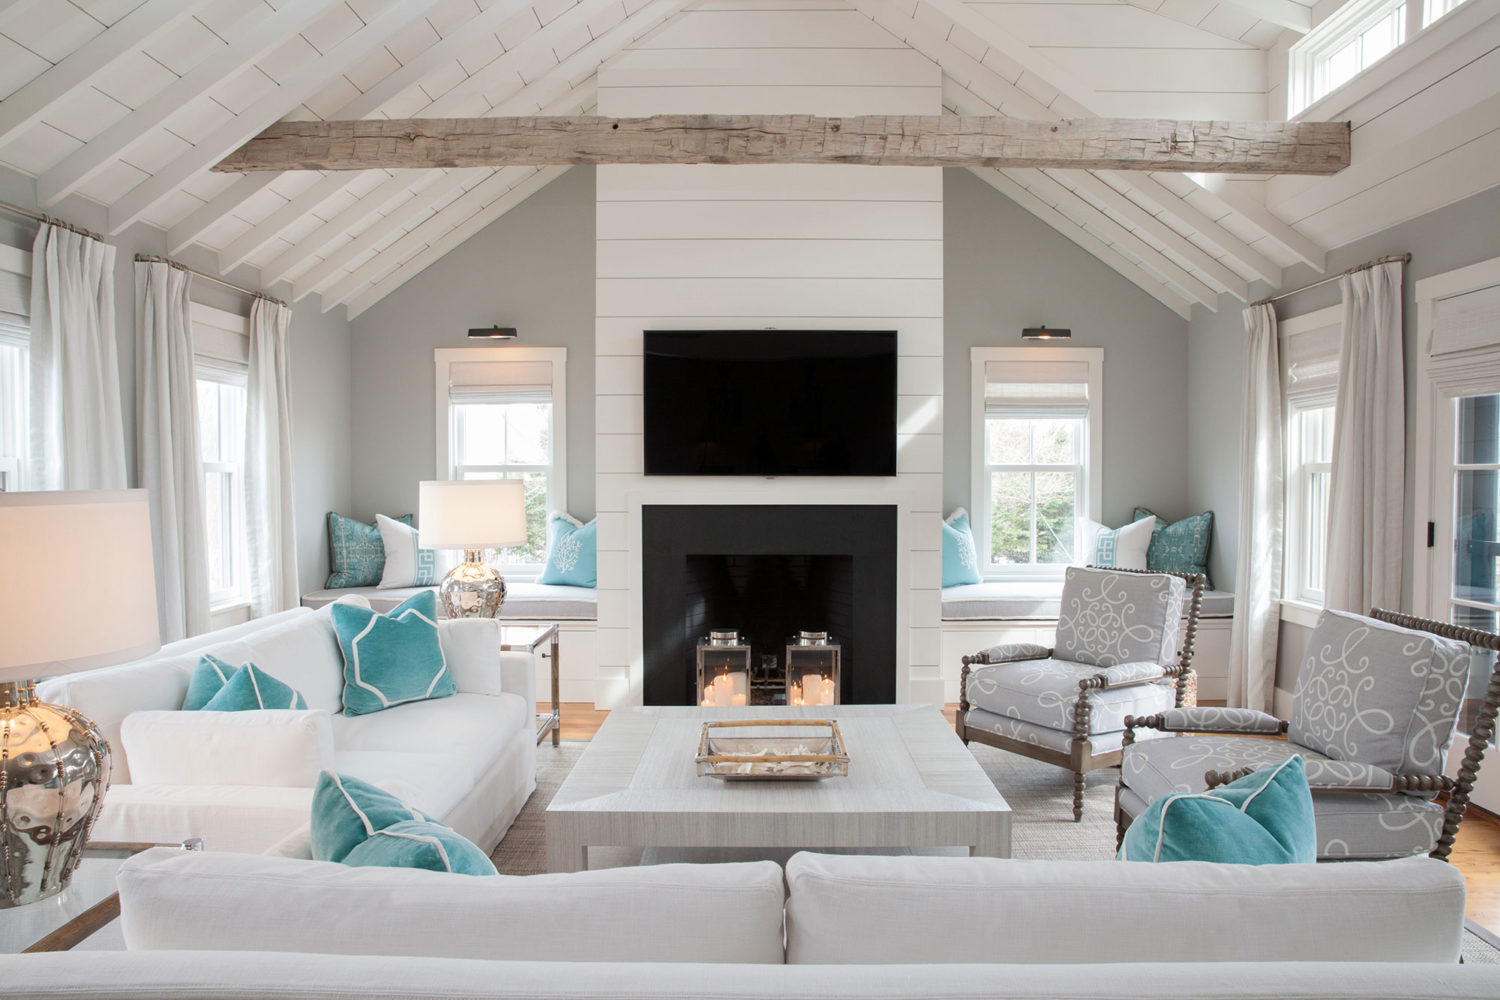 Nantucket Interior Design By Carolyn Thayer Interiors With